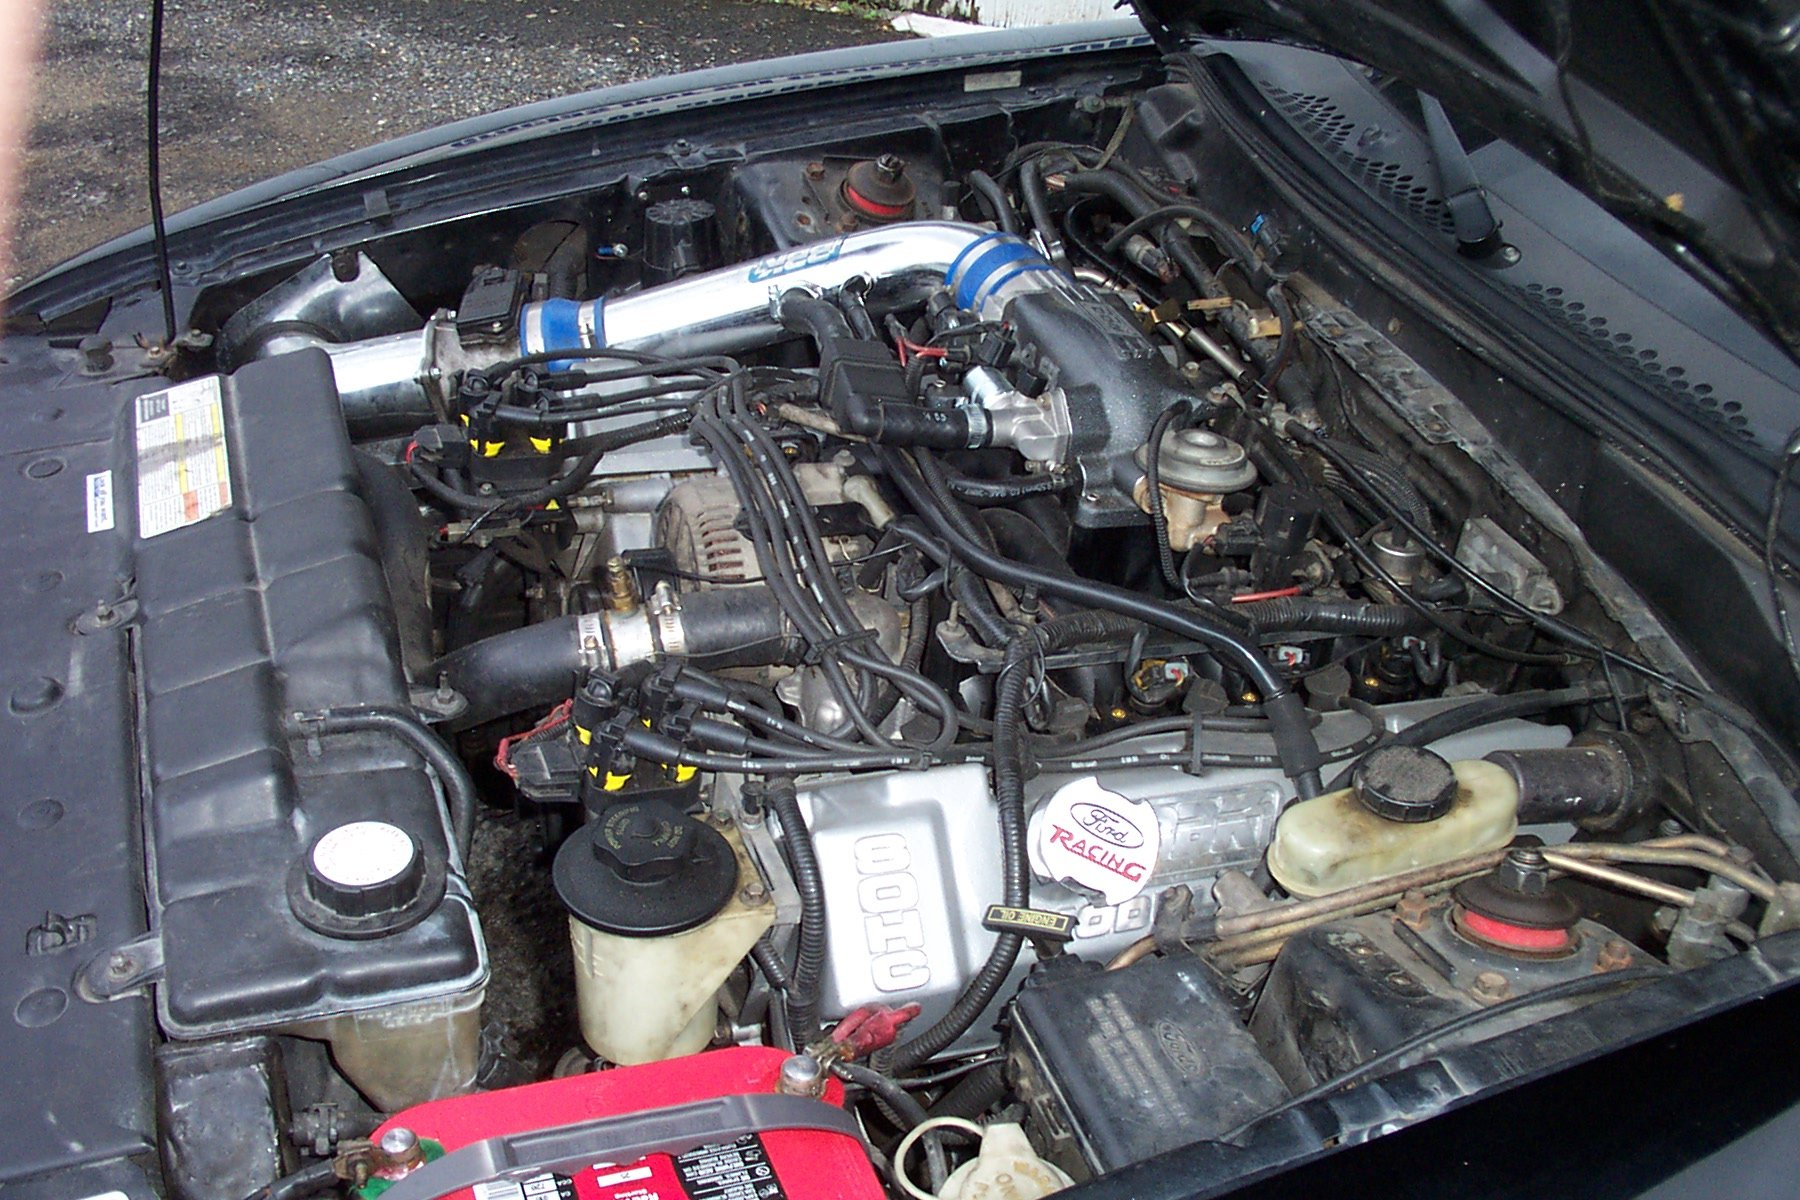 Check Out My Engine 1996 Mustang Gt Ford Mustang Forum